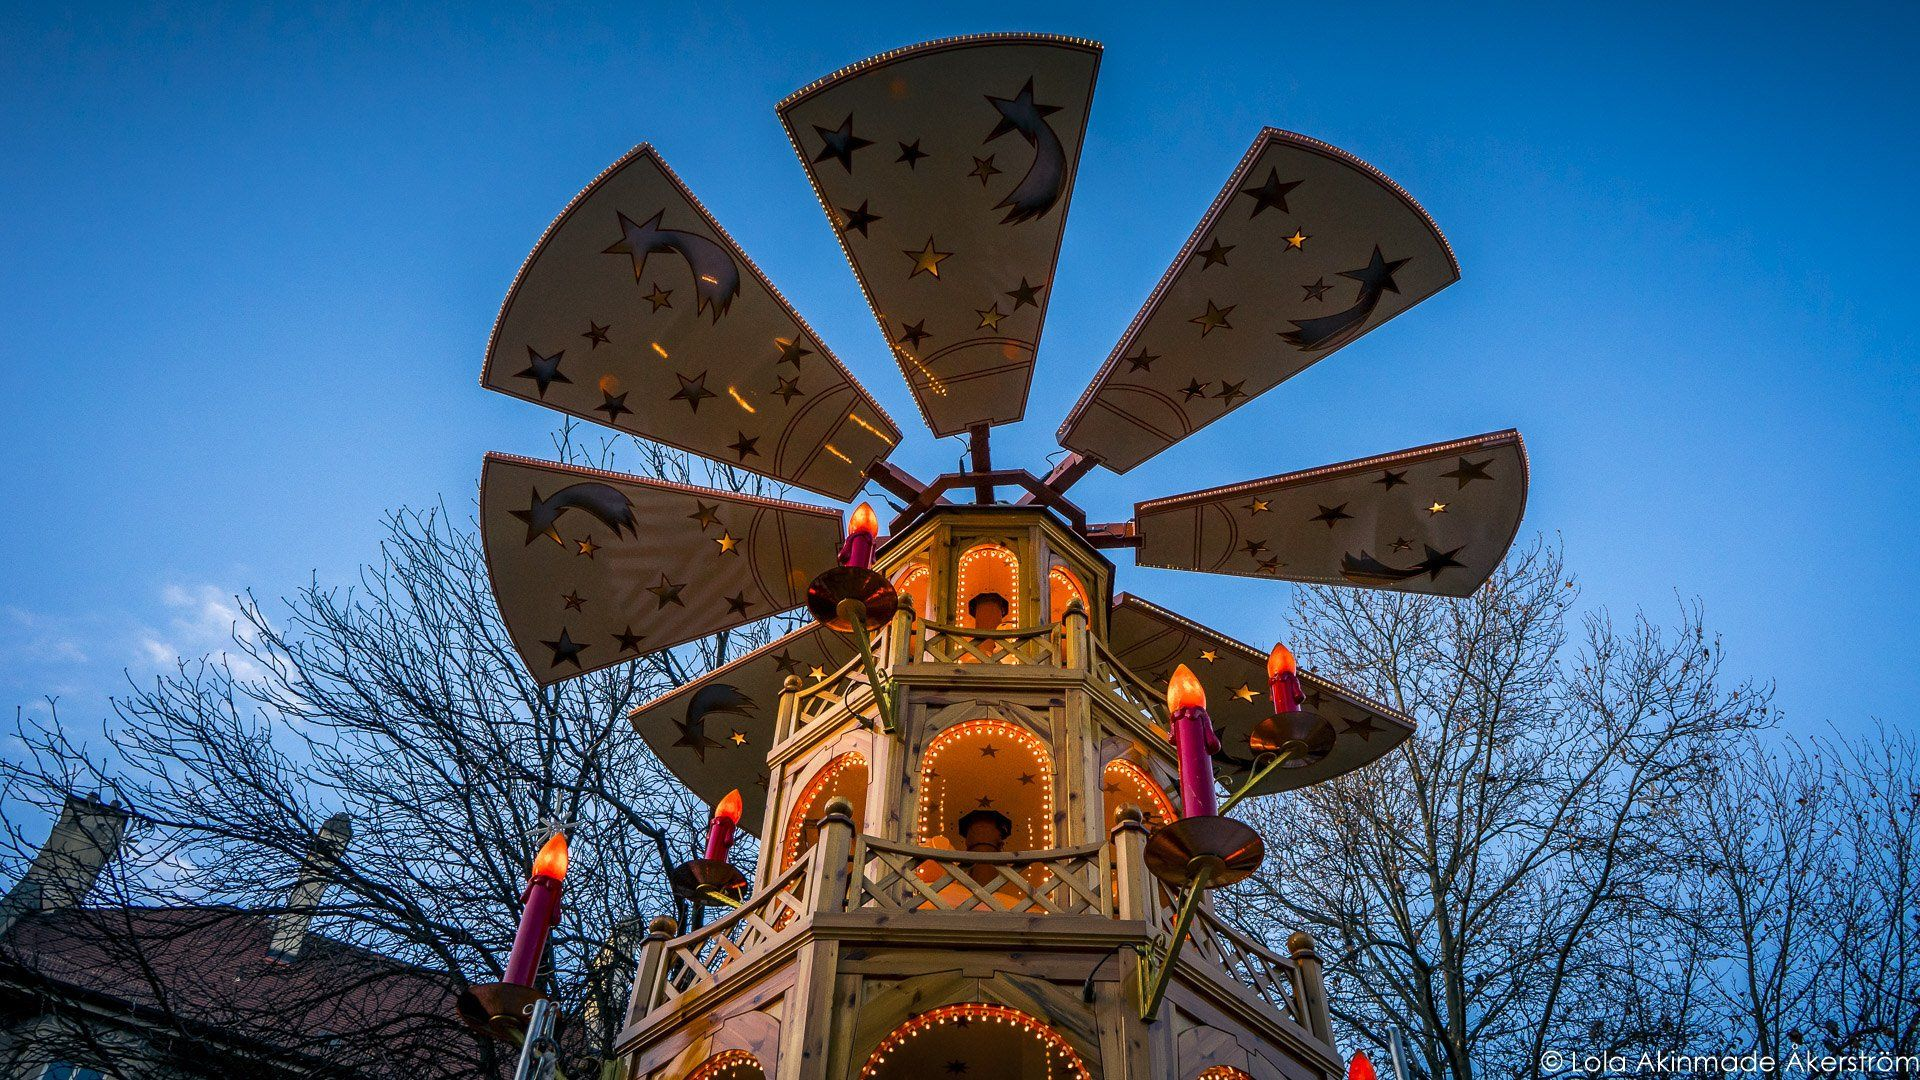 Here are some of my photos from Munich's Christmas Markets.